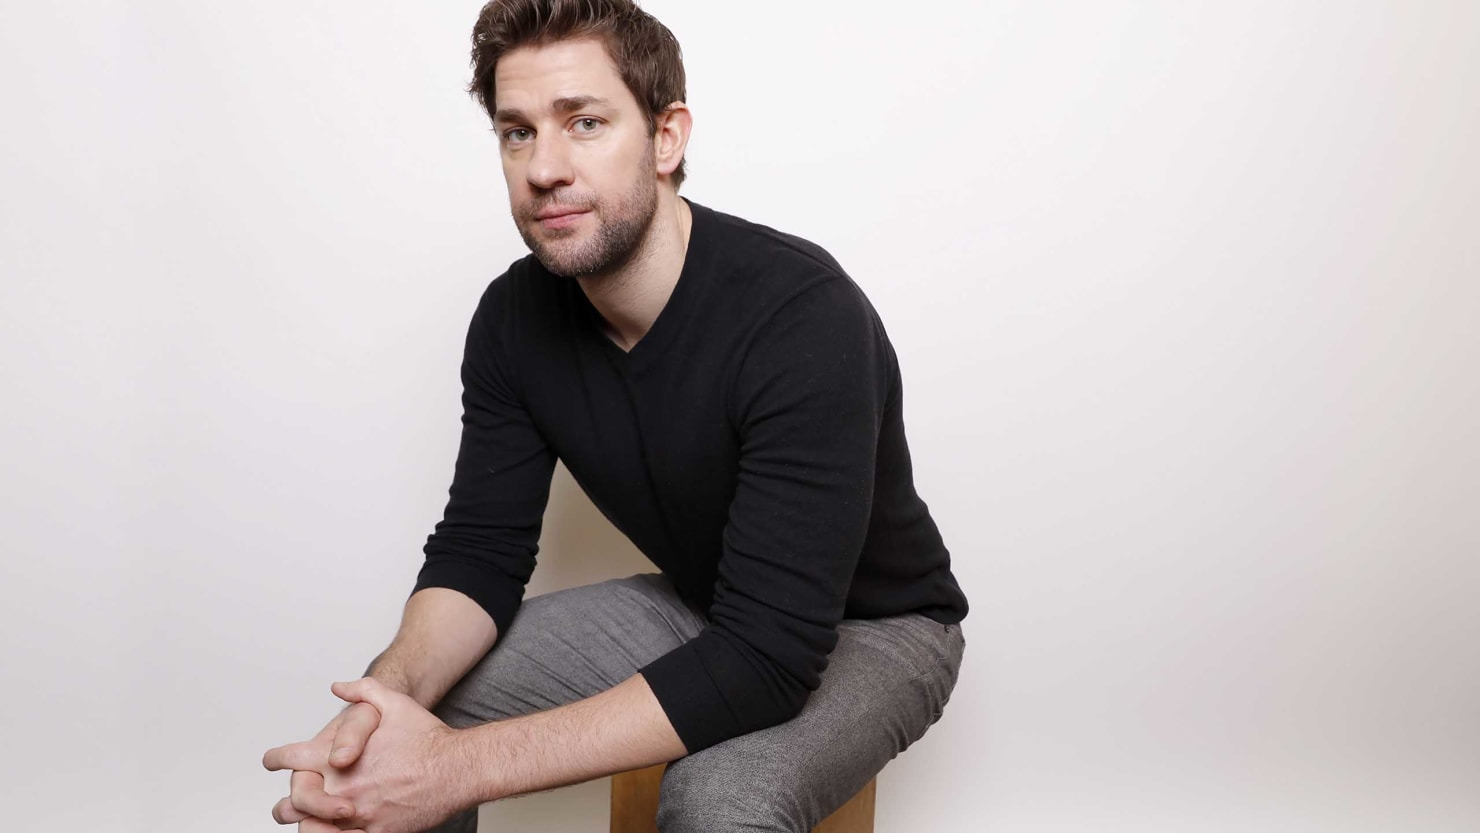 John Krasinski Lost Out on Captain America  So He Became a Great